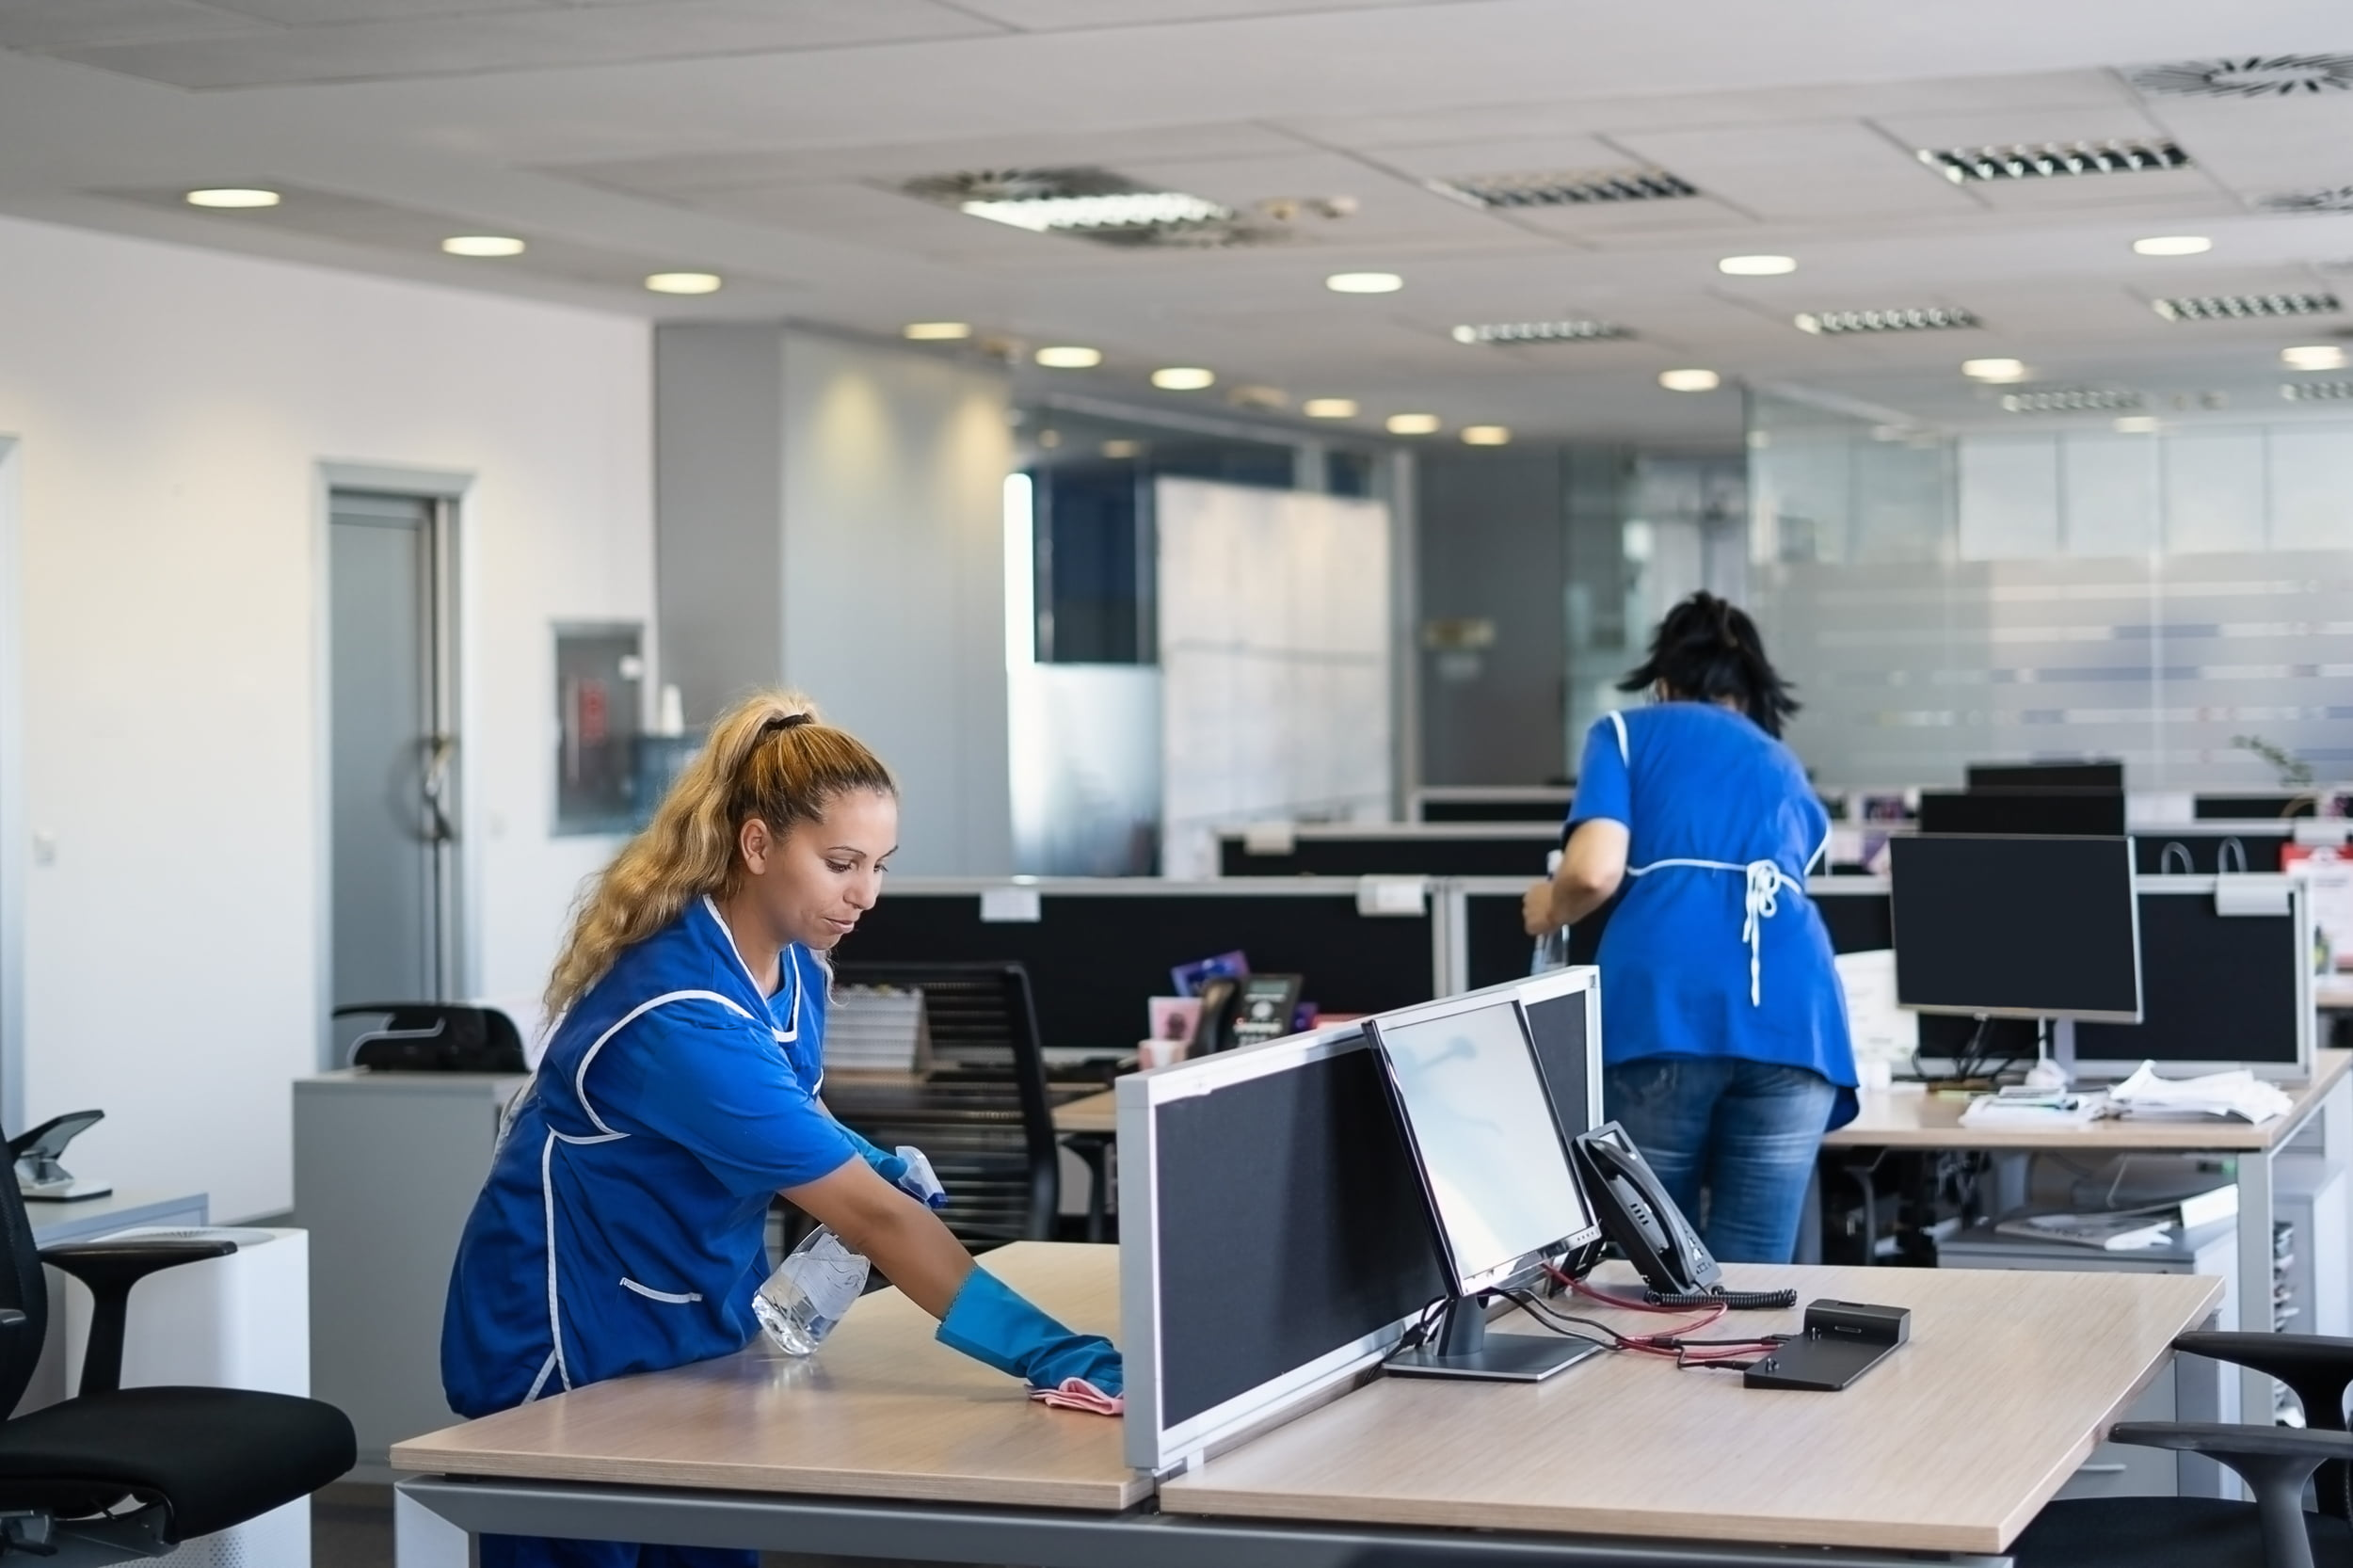 Two women cleaners cleaning office. Star Clean Ltd, Cleaning, Cleaners, Commercial Cleaners, Domestic Cleaners. Bath, Bristol